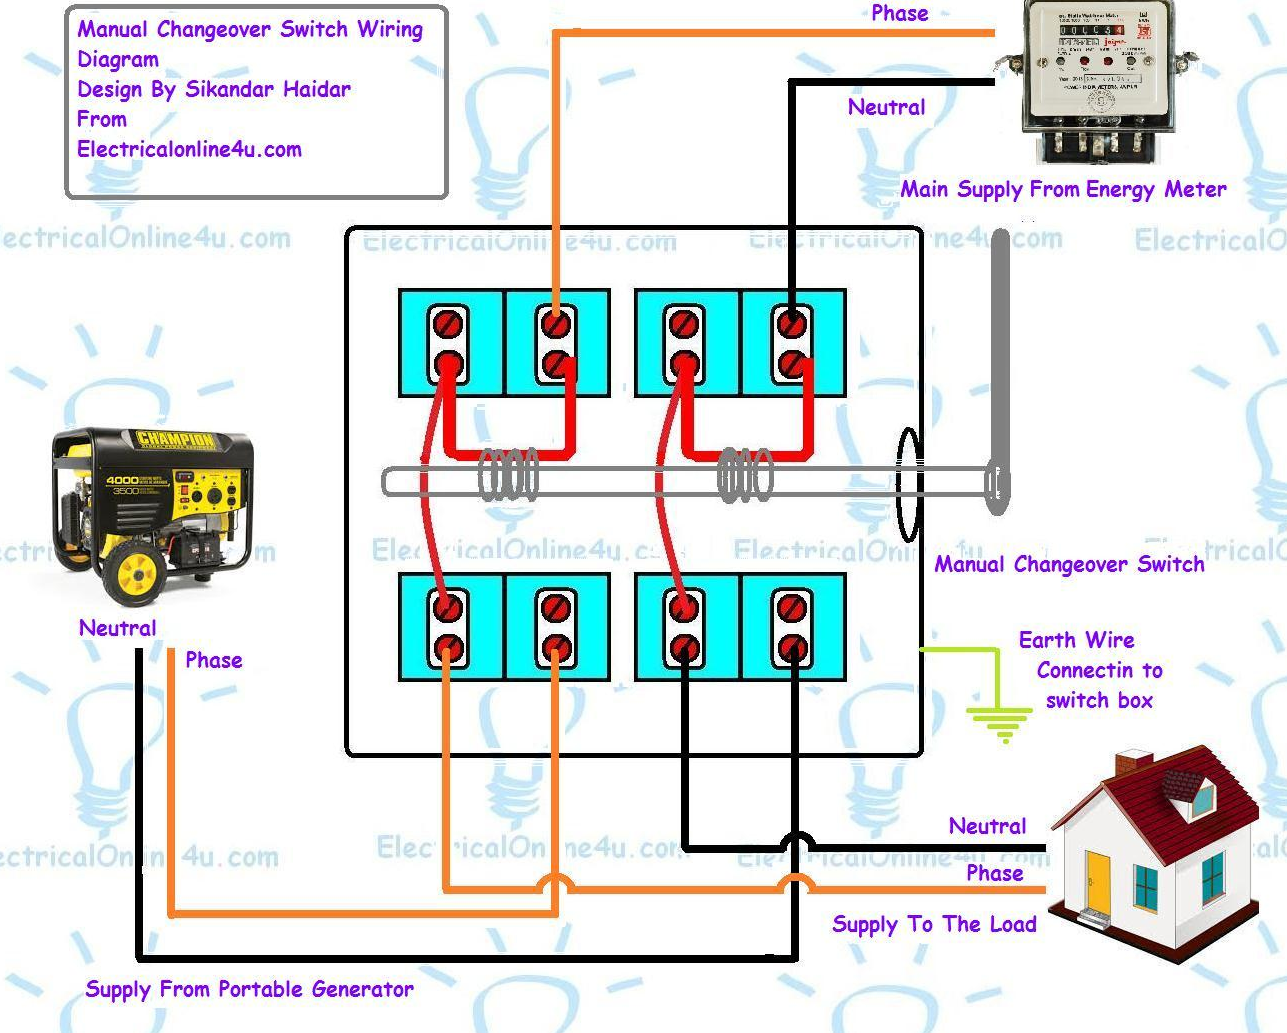 manual%2Bchangeover%2Bswitch%2Bwiring%2Bdiagram manual changeover switch wiring diagram for portable generator changeover switch wiring diagram generator at mifinder.co